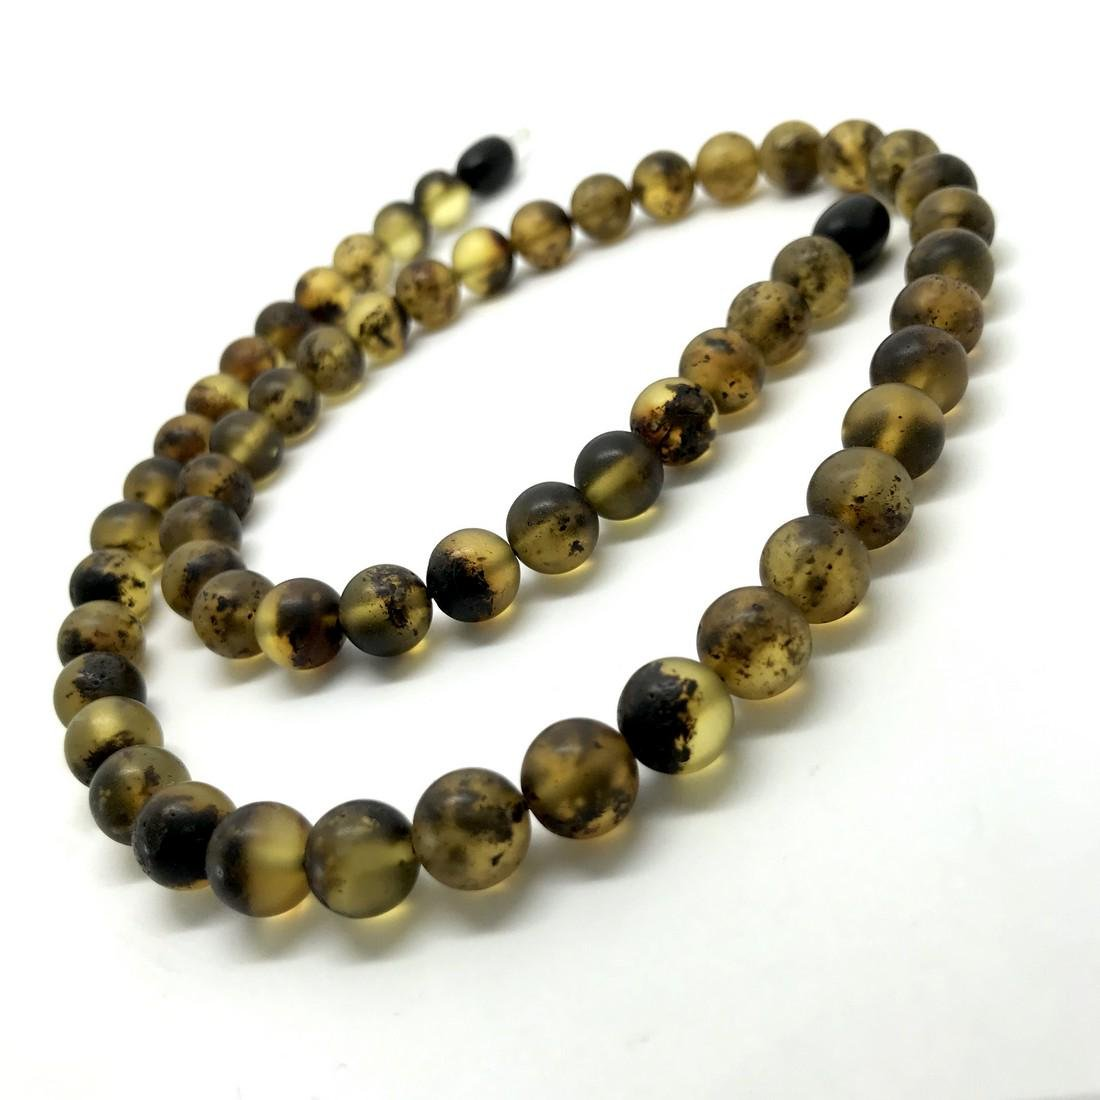 Vintage Baltic amber necklace 46cm beads 8mm honey